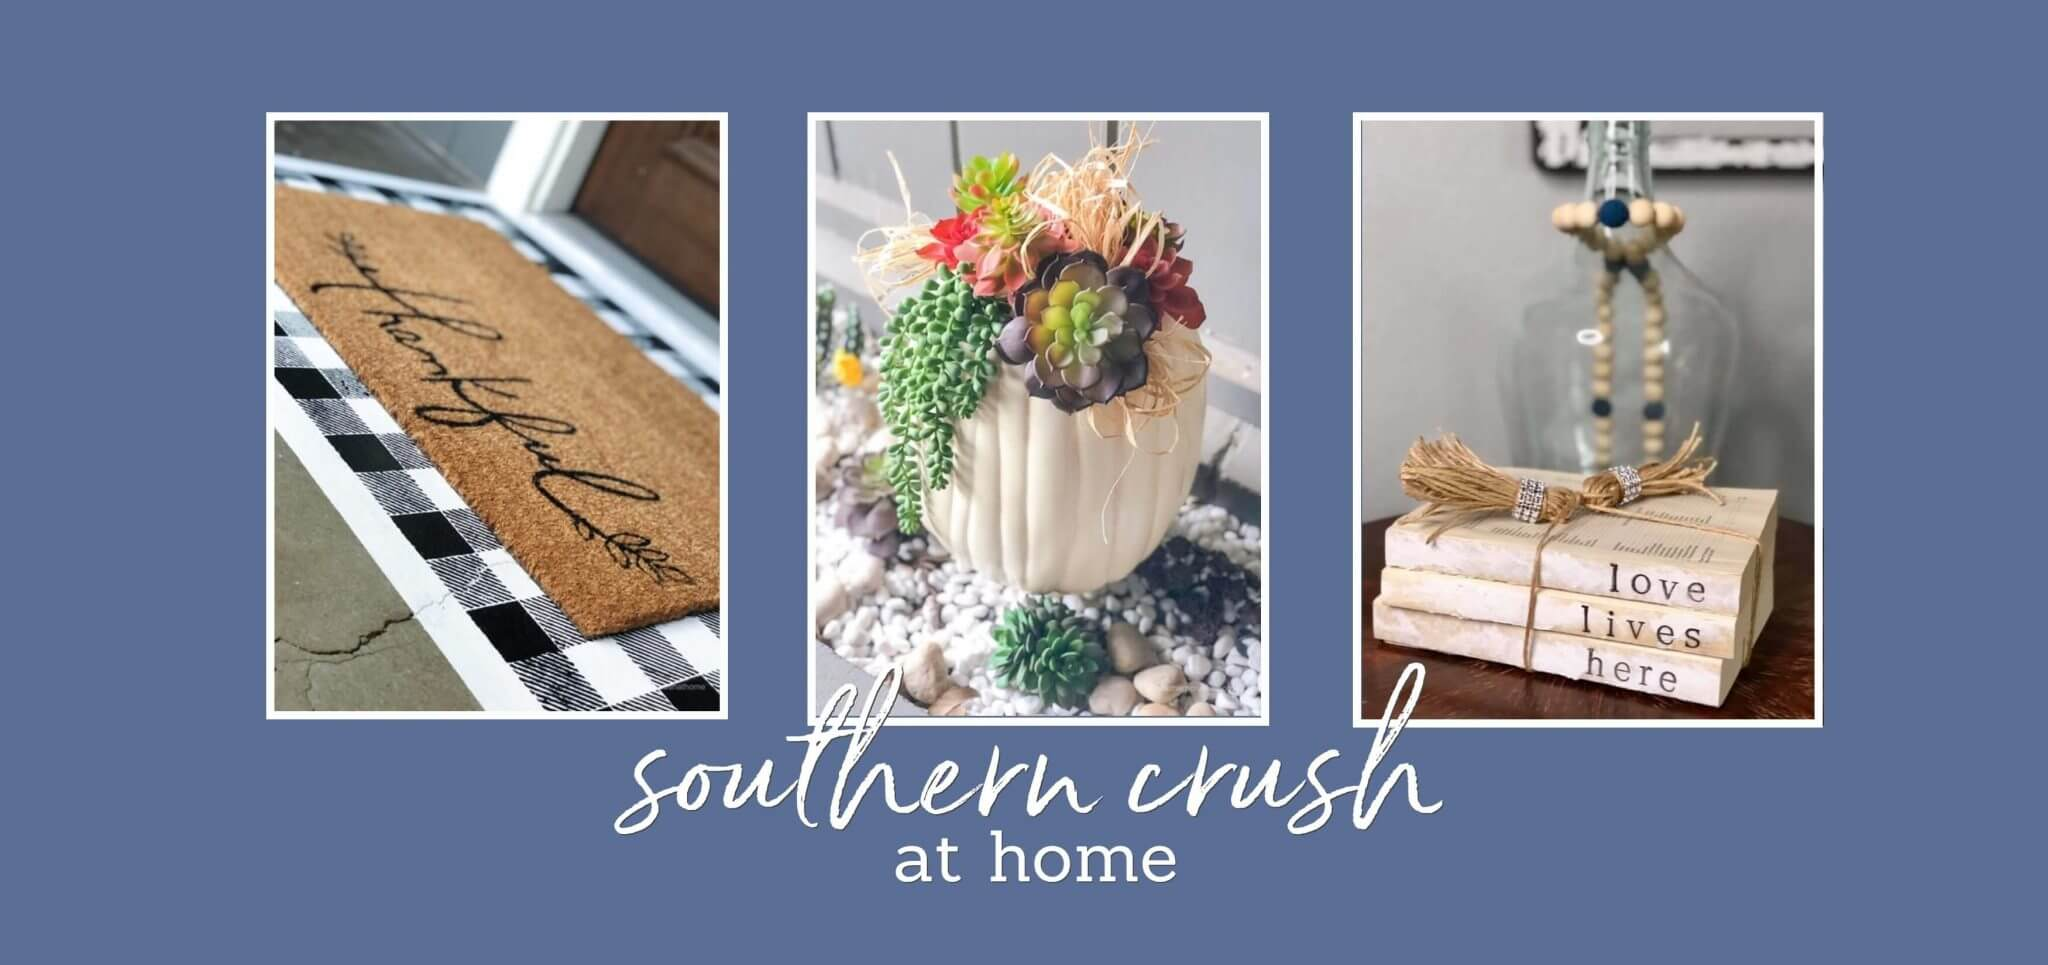 southern-crush-at-home-banner